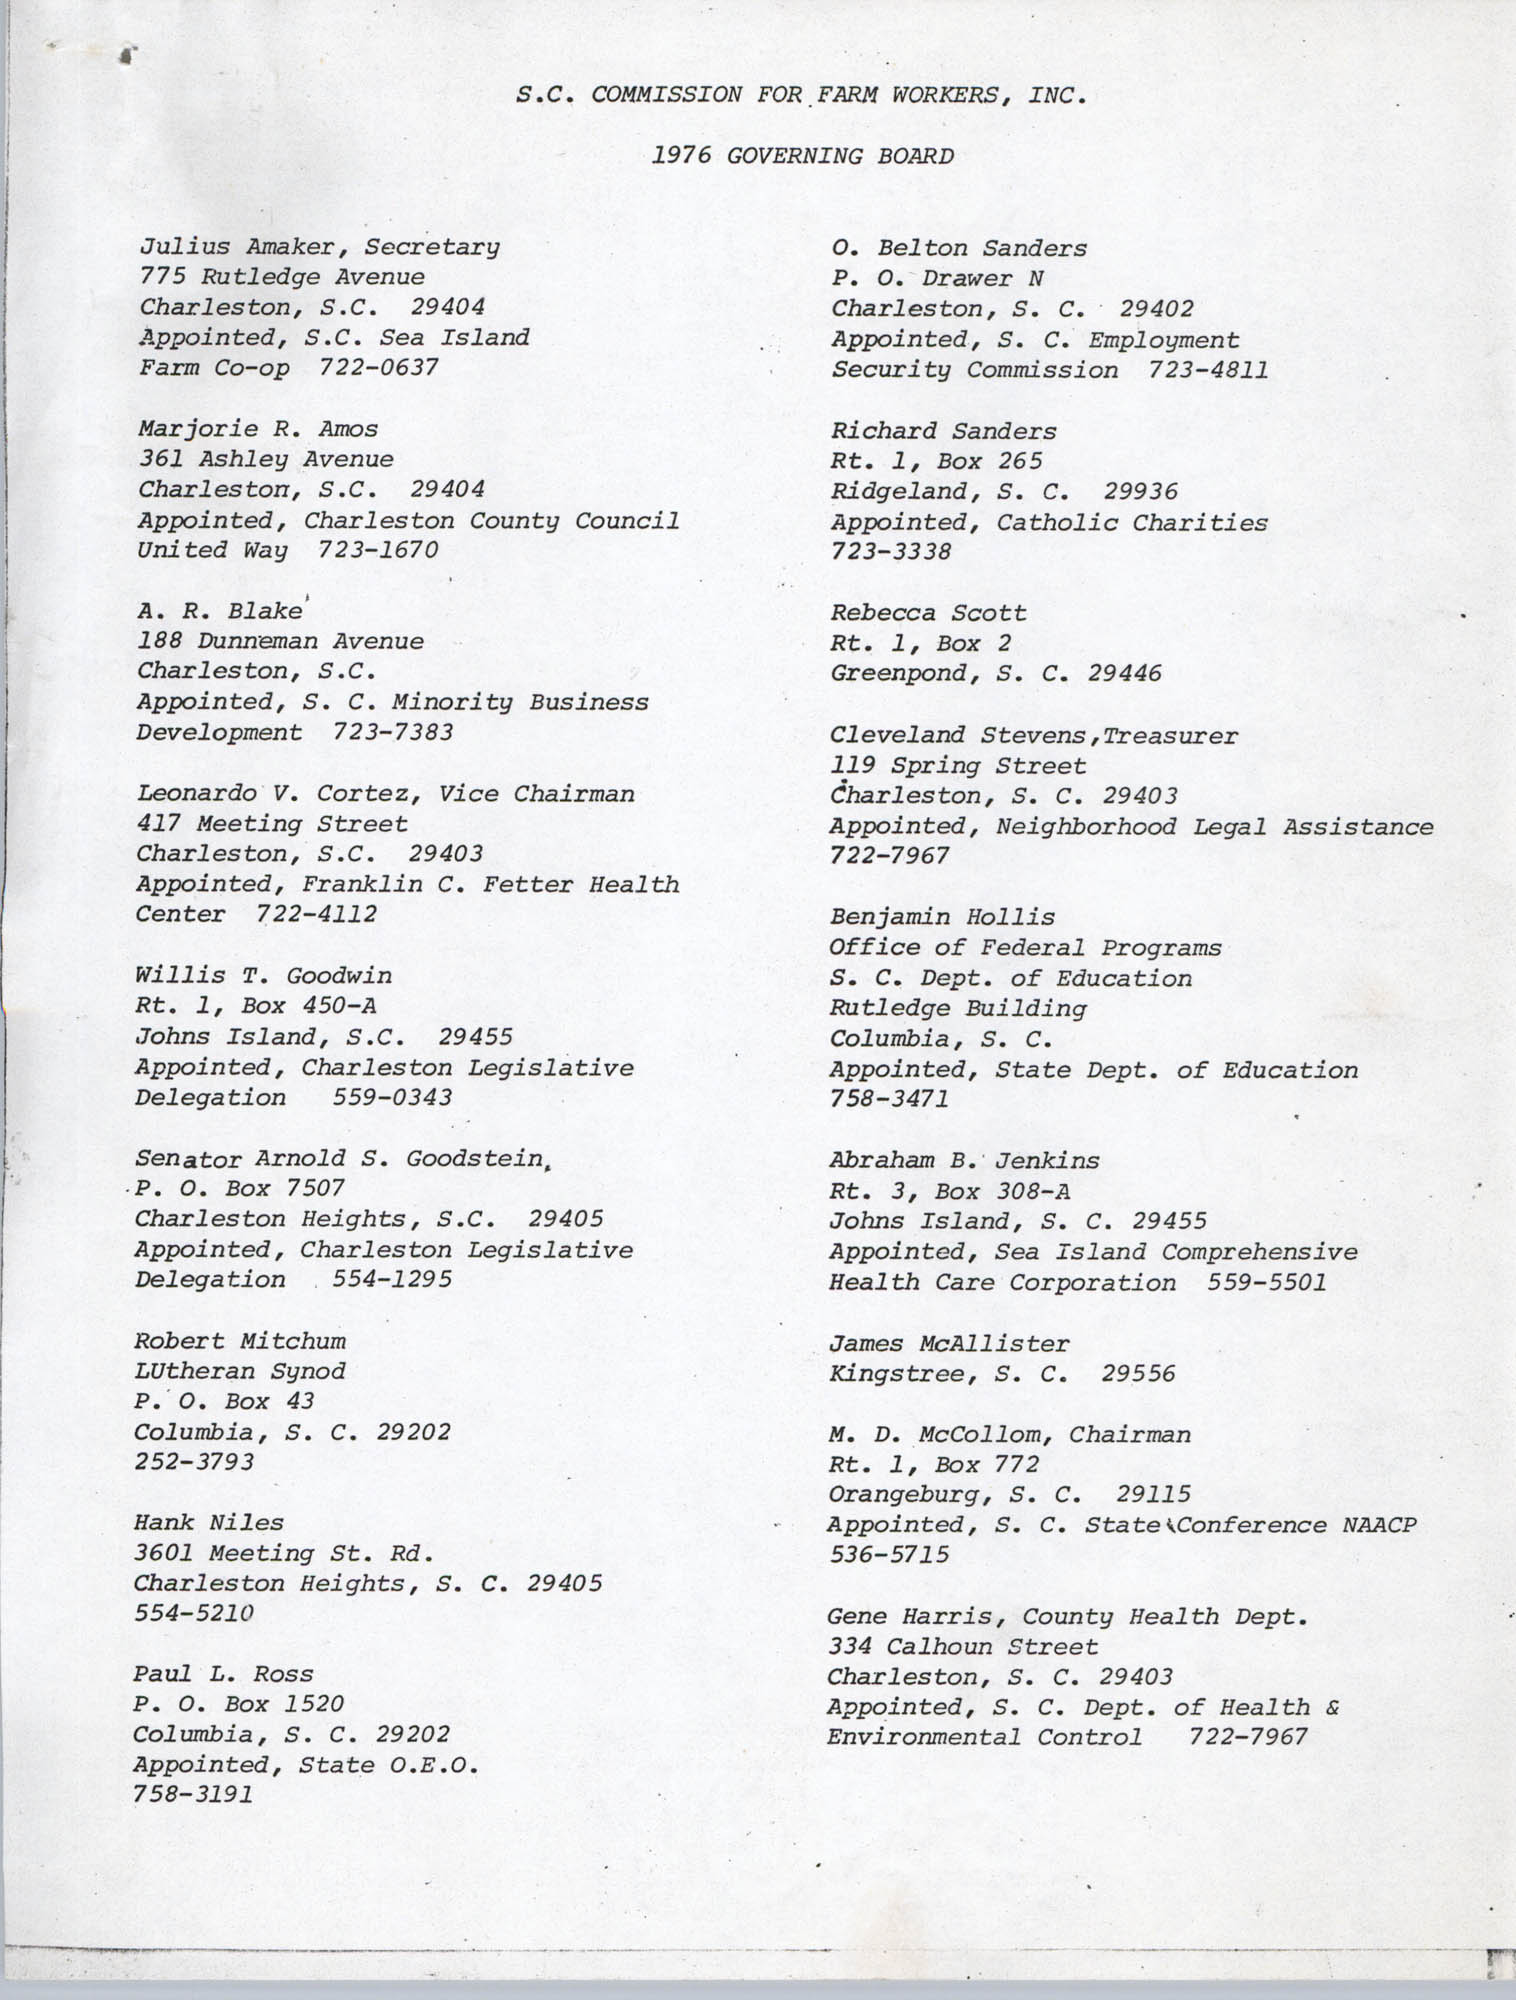 S. C. Commission For Farm Workers, 1976 Governing Board